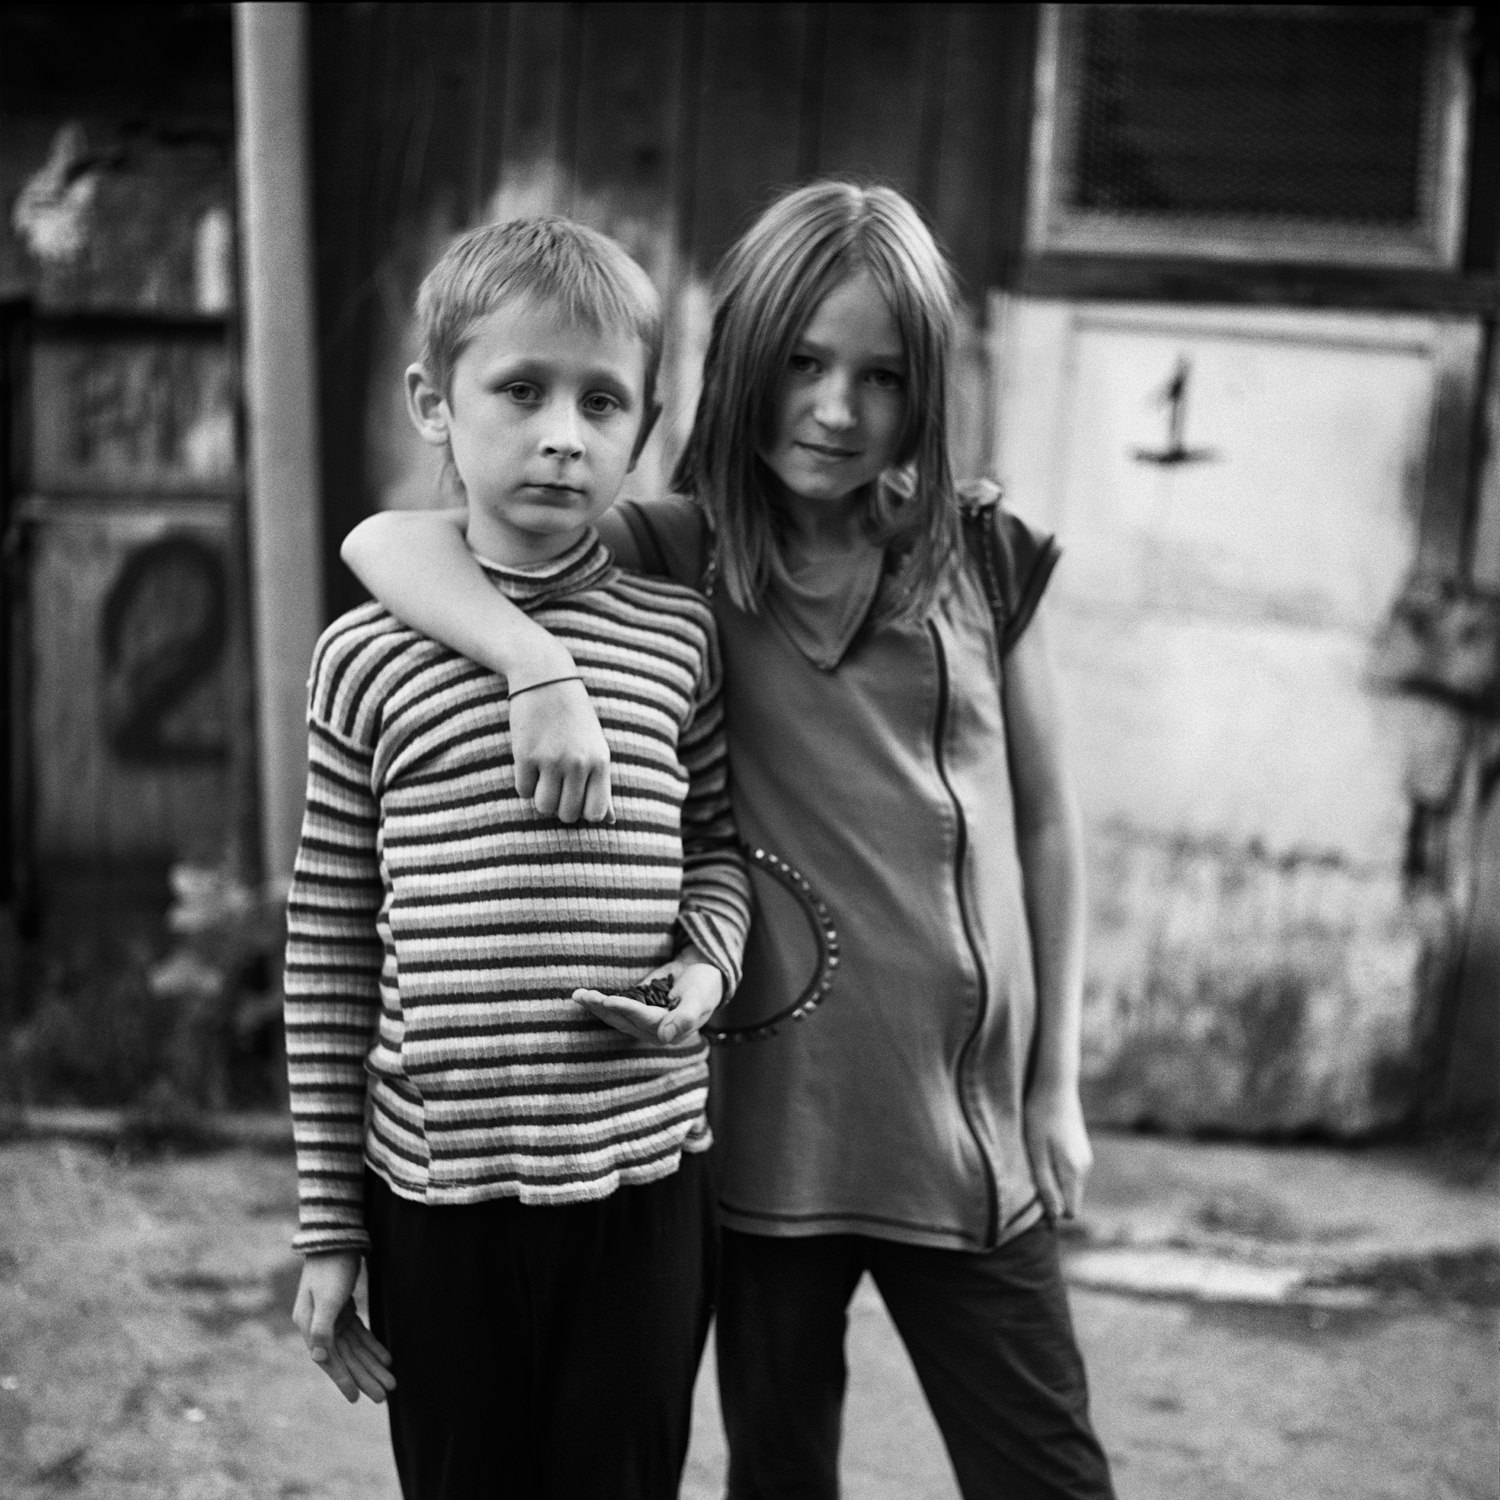 Portrait photo of two kids in suburbs of Minsk city - boy with sunflower seeds in his left hand and girl put her hand on the boy's shoulder